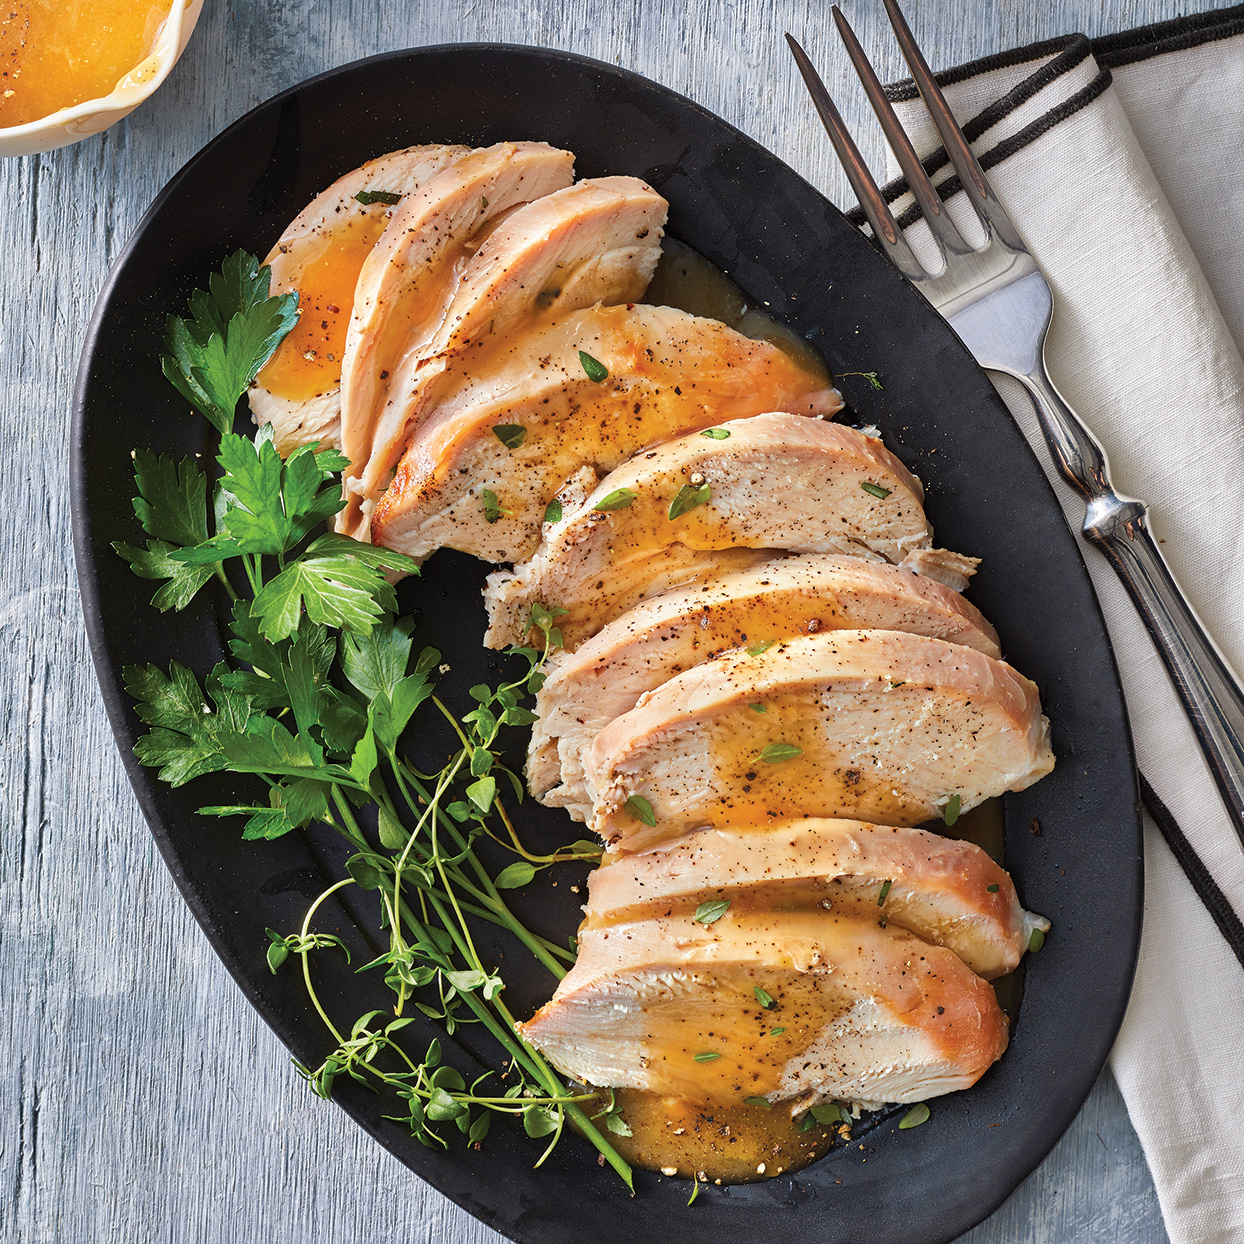 Depart from the expected roasted whole turkey for Friendsgiving dinner, and serve this succulent, slow-cooker turkey breast instead. You'll delight guests with a new dish and also save yourself hands-on time and effort. As a bonus on Turkey Day, this recipe leaves your oven free for stuffing and casseroles. If whole turkey breast isn't available, ask your butcher to cut up a whole turkey and give you the whole turkey breast. To make this recipe gluten free, use gluten-free Dijon. For a pretty presentation, serve with fresh thyme and cilantro sprigs.